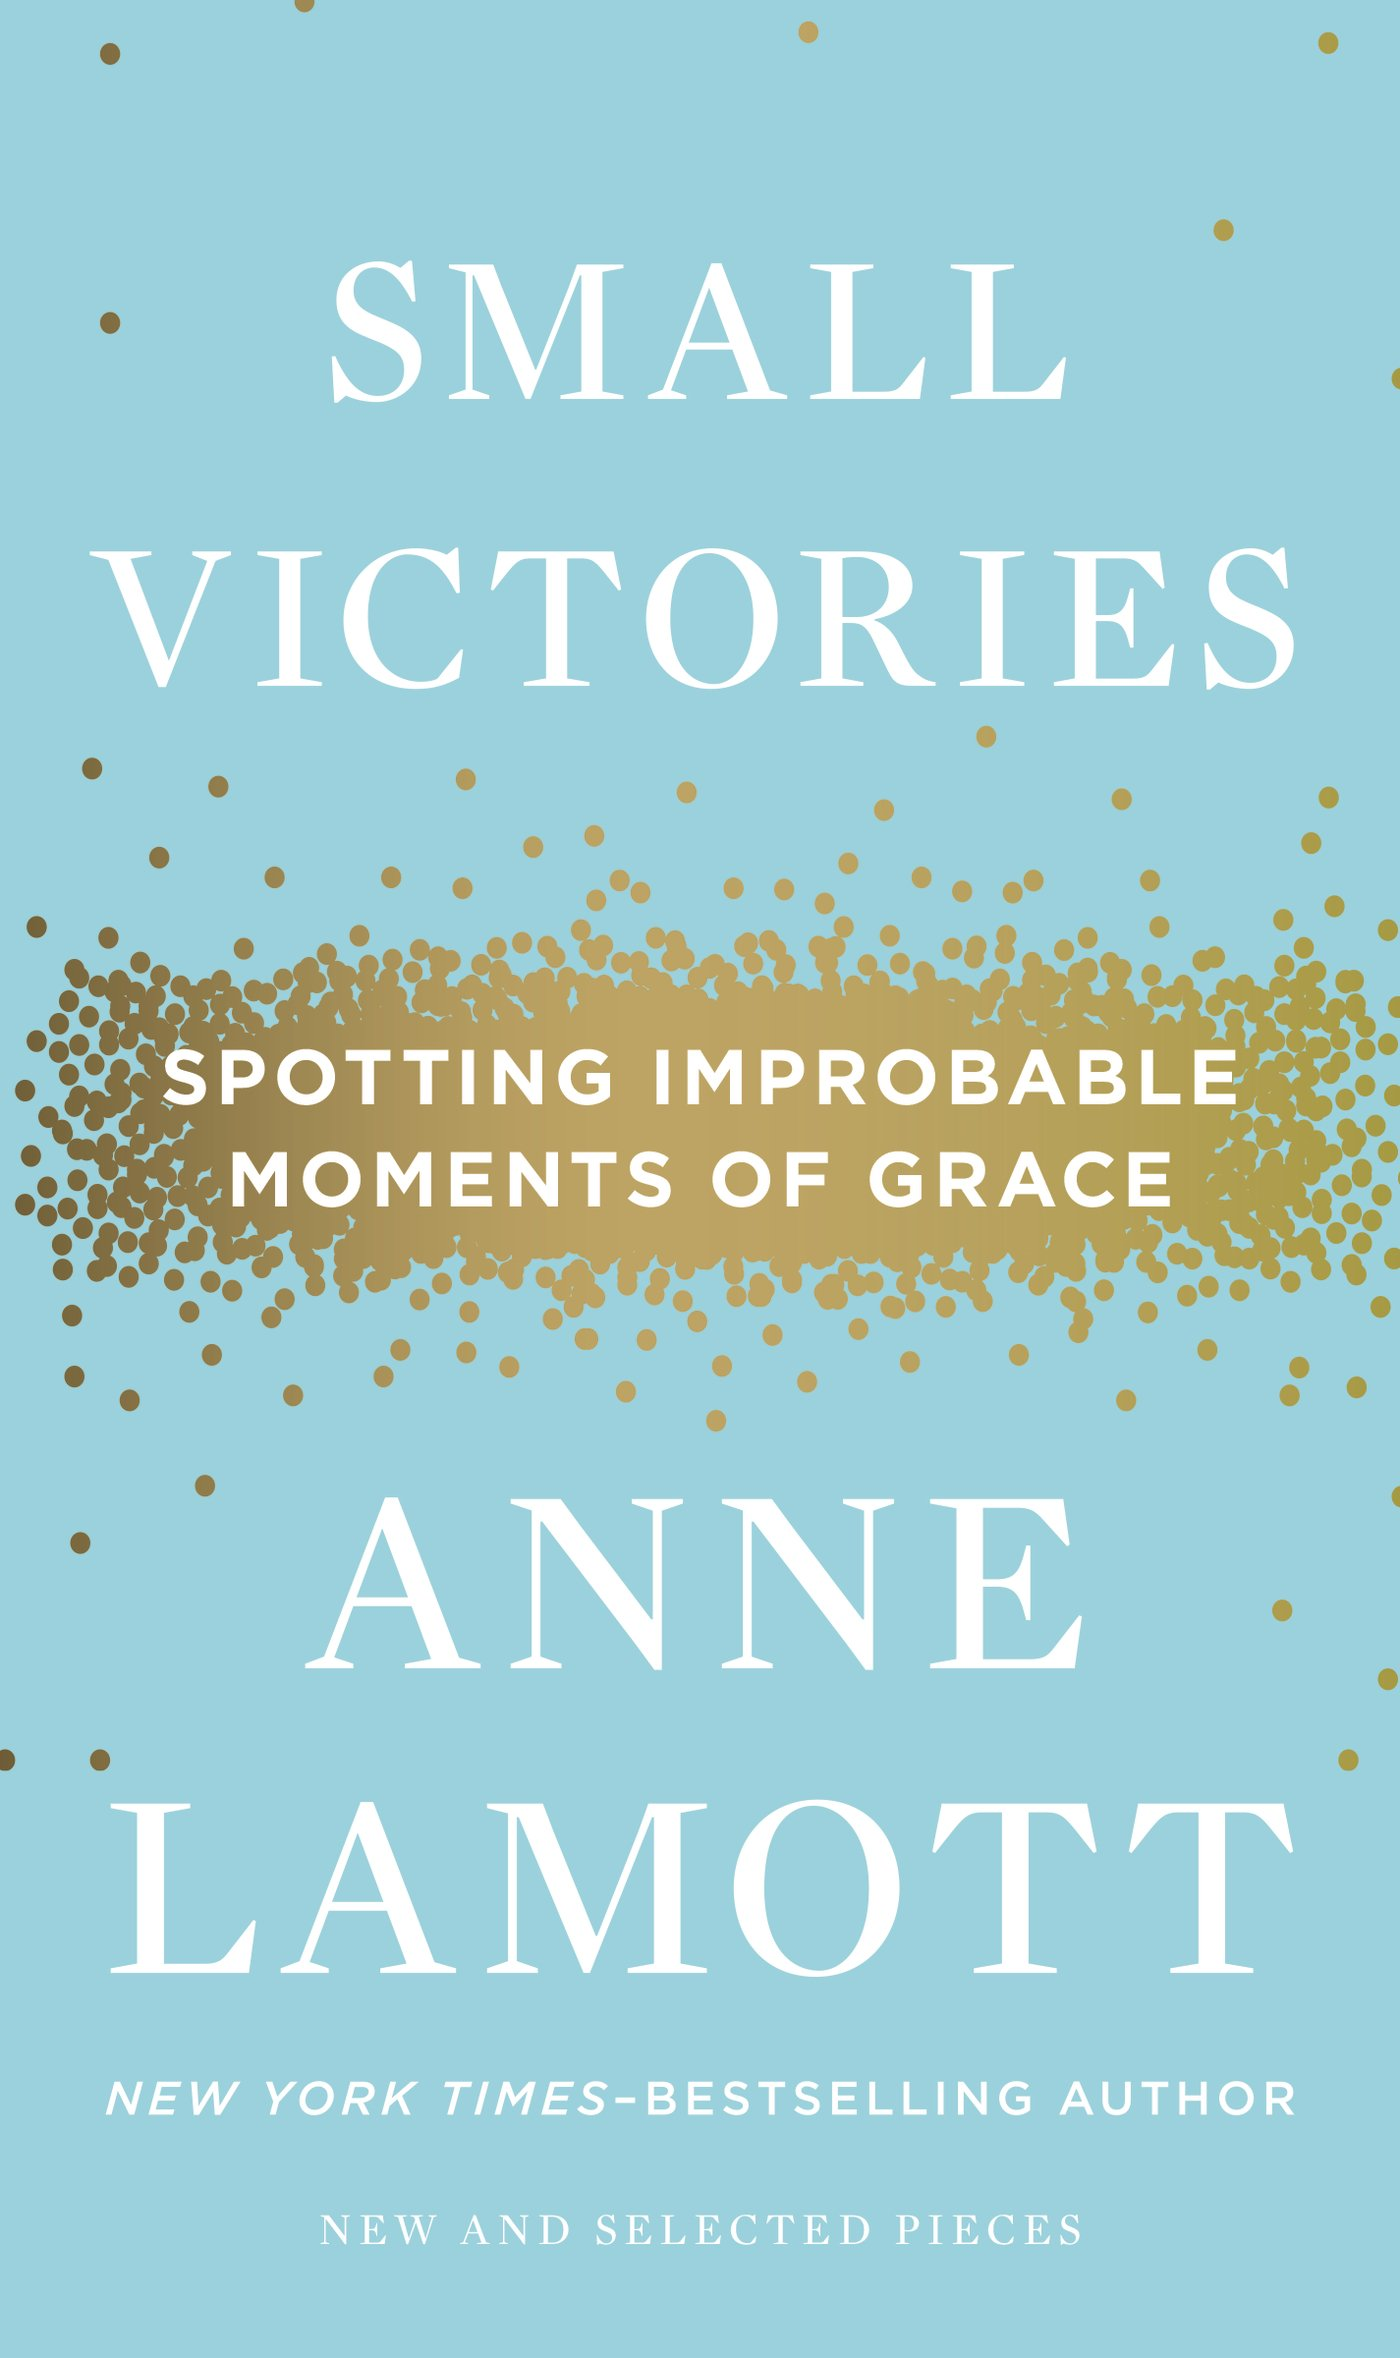 Anne Lamott on Grief, Grace, and Gratitude